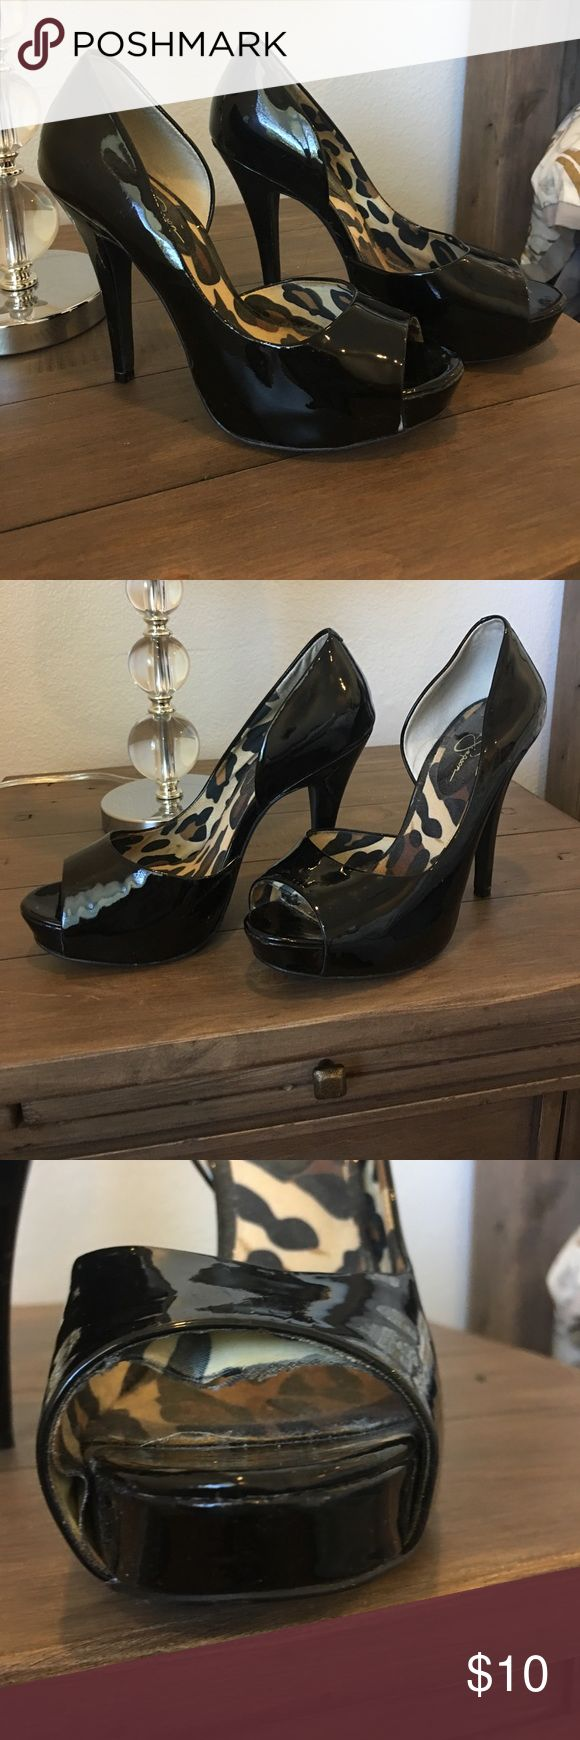 Jessica Simpson Heels Always complimented on these shoes. Super cute and can go with just about anything. Pricing reflects the wear. Please see photos where fabric is coming away from the shoe. Super easy fix. I love these shoes but haven't worn heels in ages. ❤️❤️ Jessica Simpson Shoes Heels